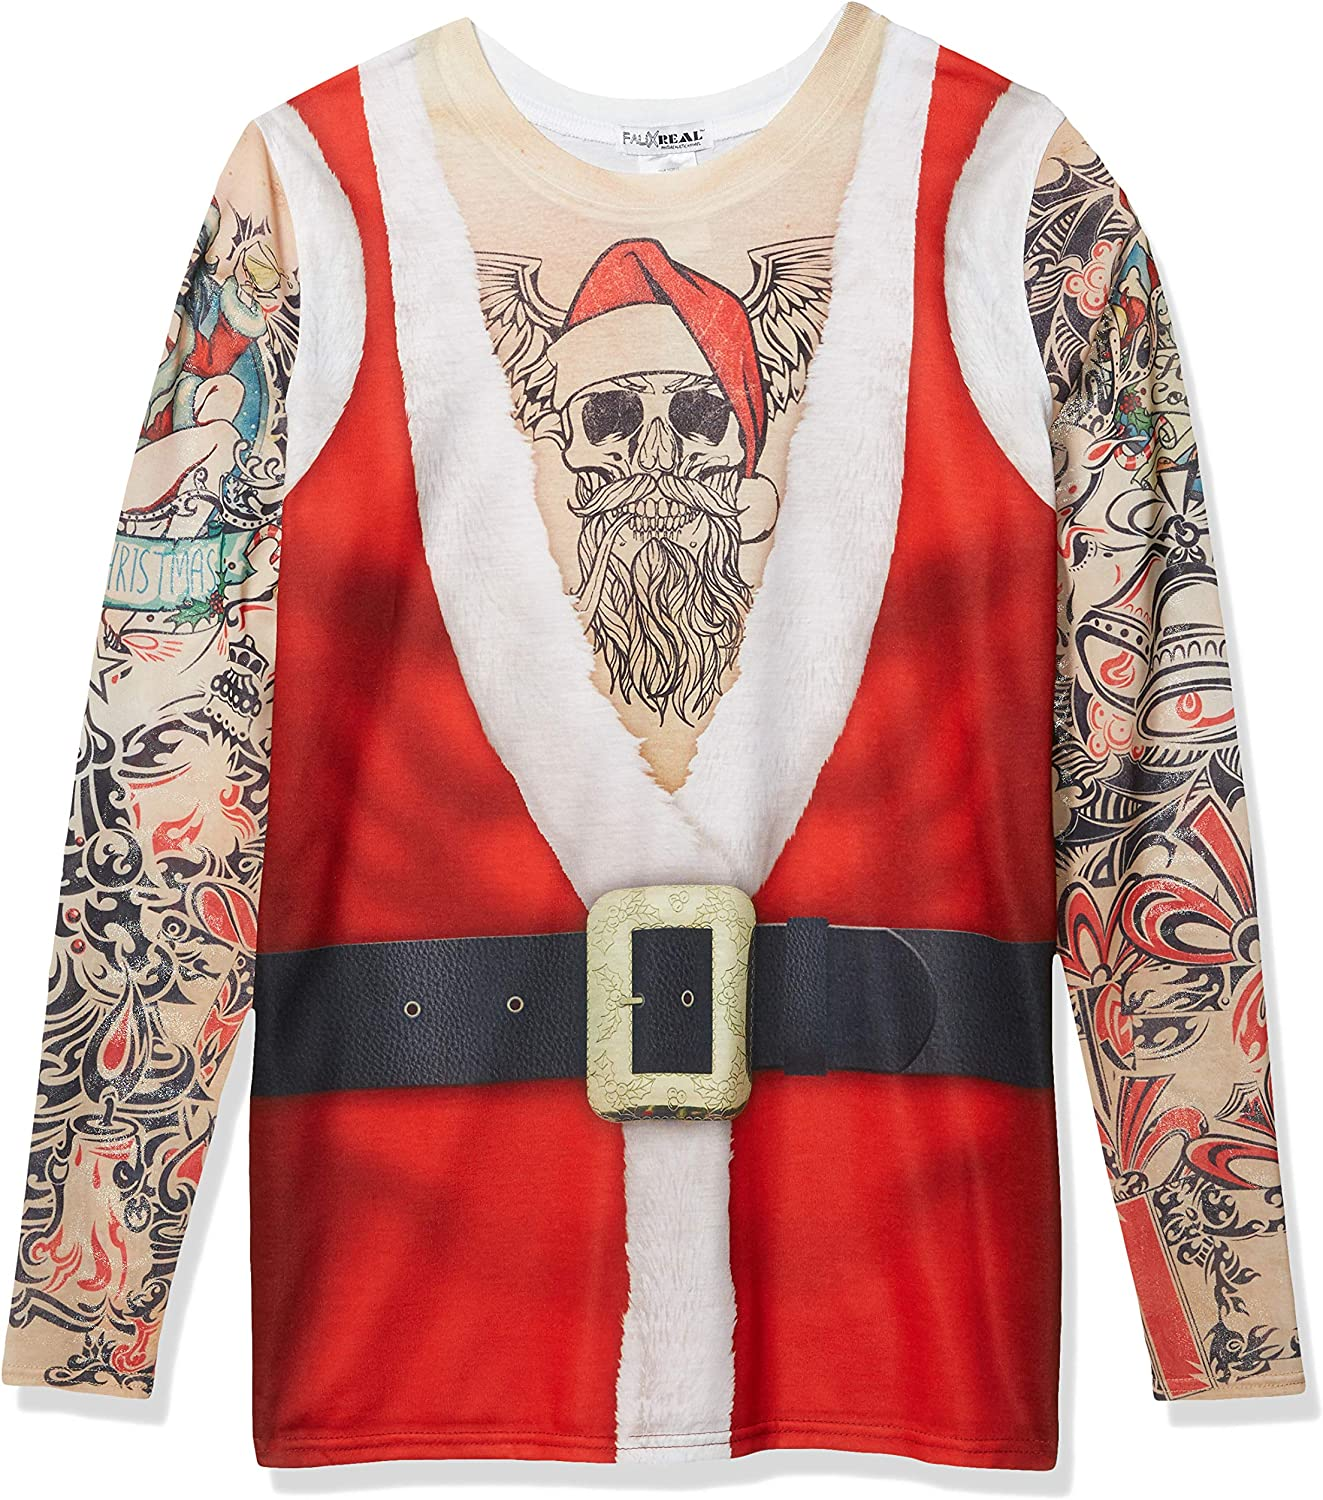 Faux Real Men's Christmas 3D Photo-Realistic Big and Tall Long Sleeve Tee